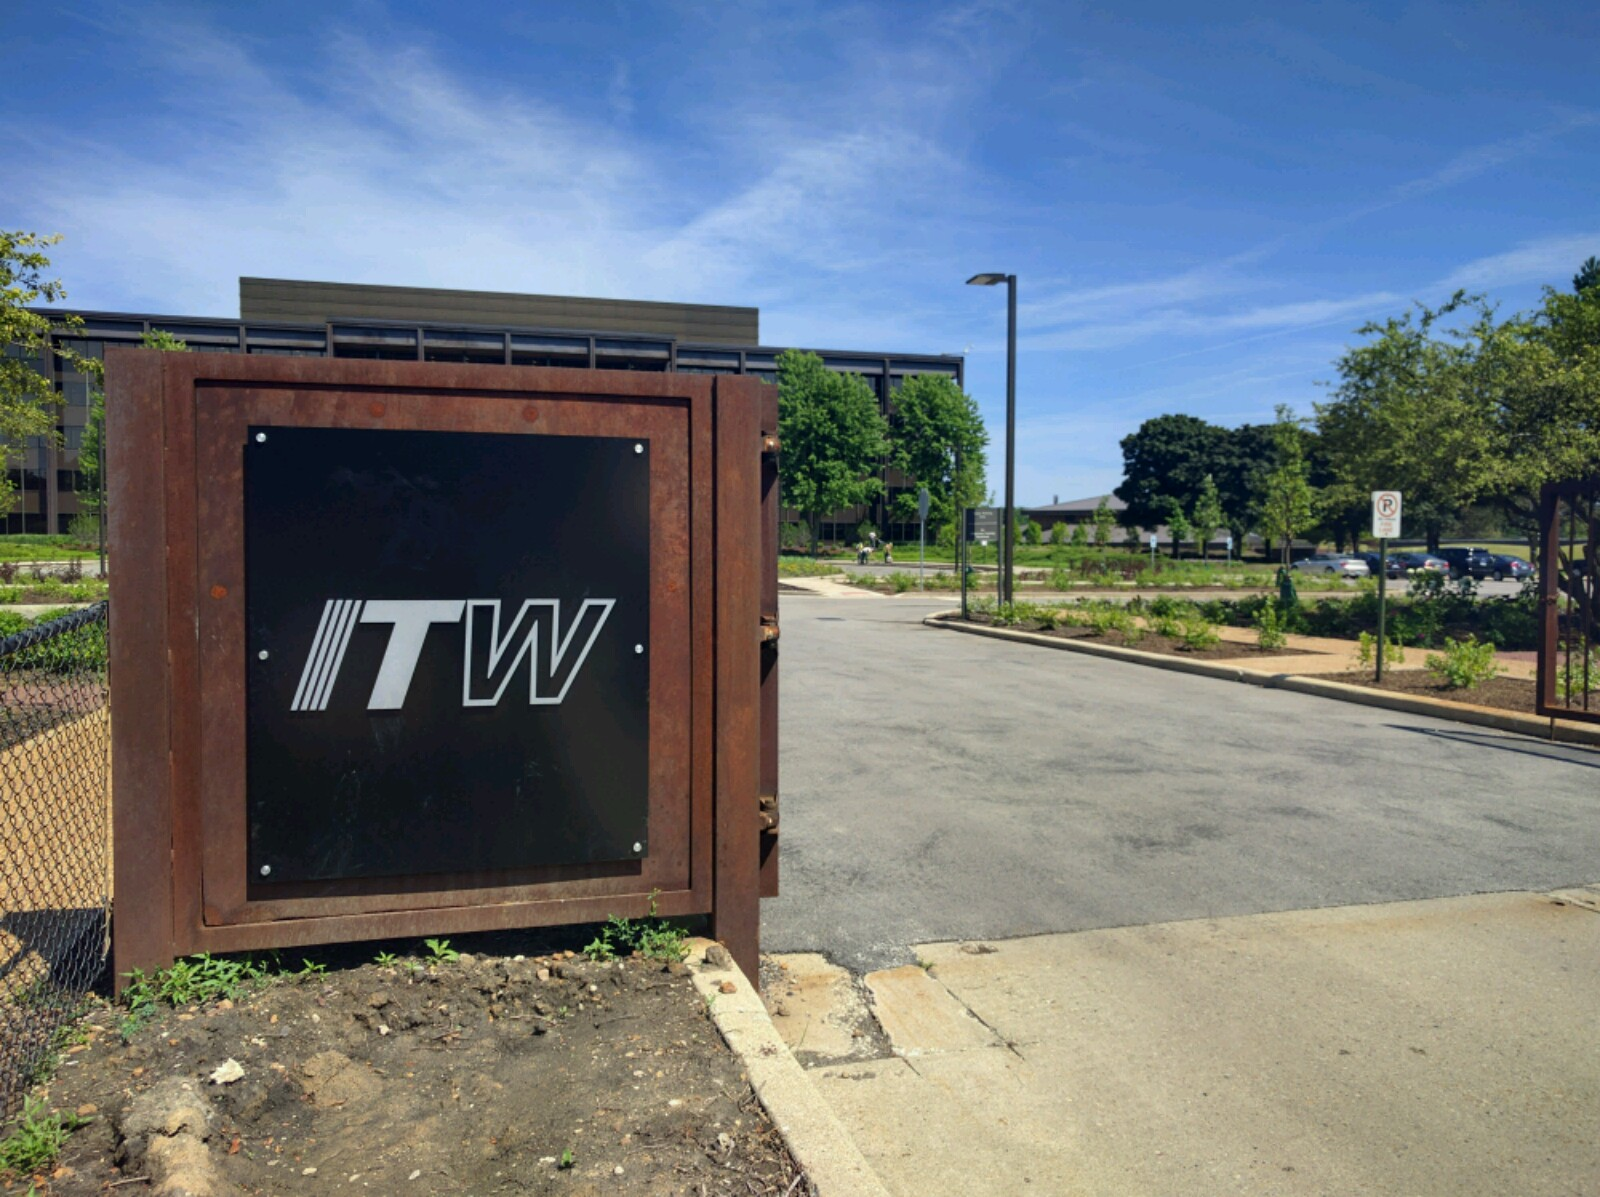 Entrance to Illinois Tool Works' corporate headquarters in Glenview, Illinois.